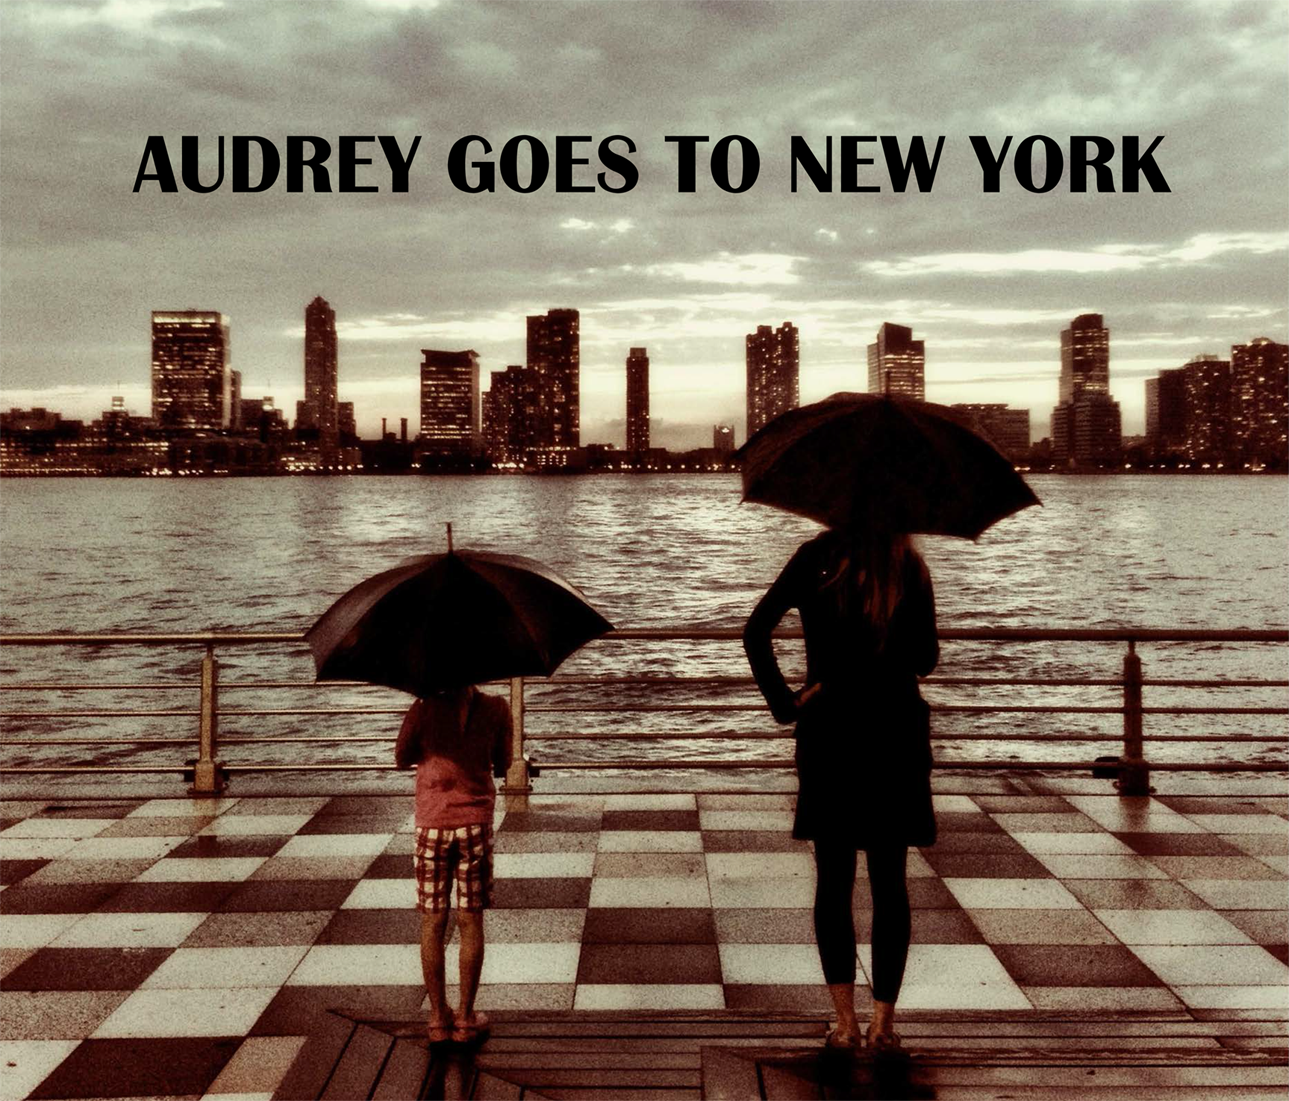 AUDREY GOES TO NEW YORK.png